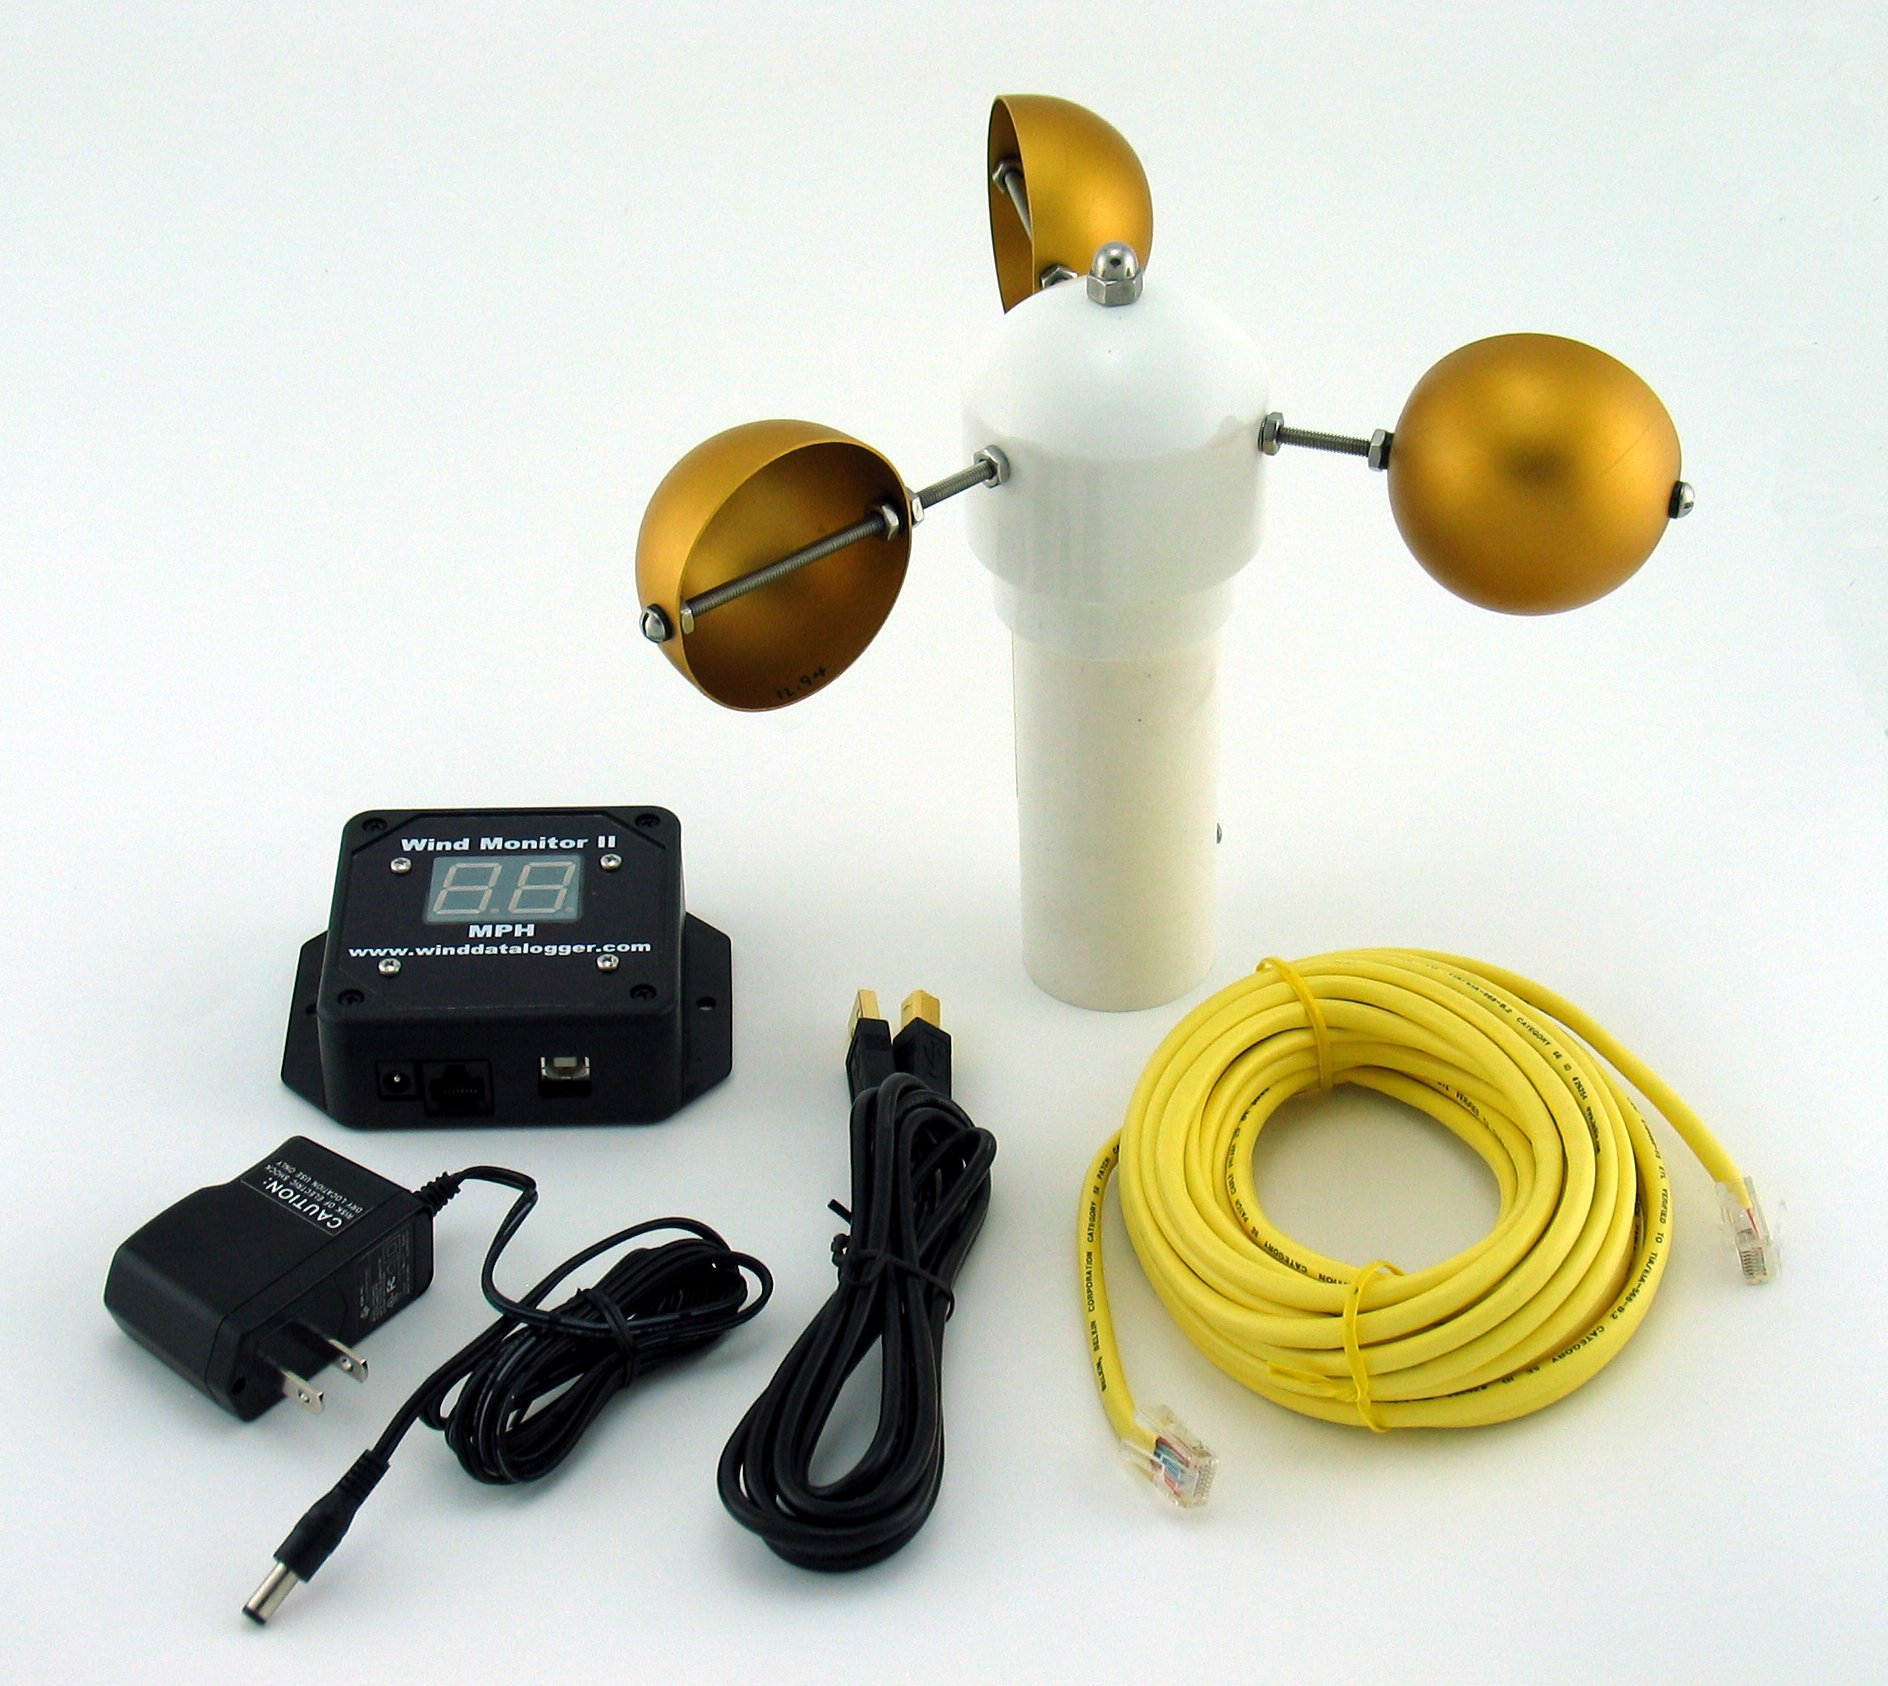 Wind Monitor II package with AC adapter, USB. (APRS6121)